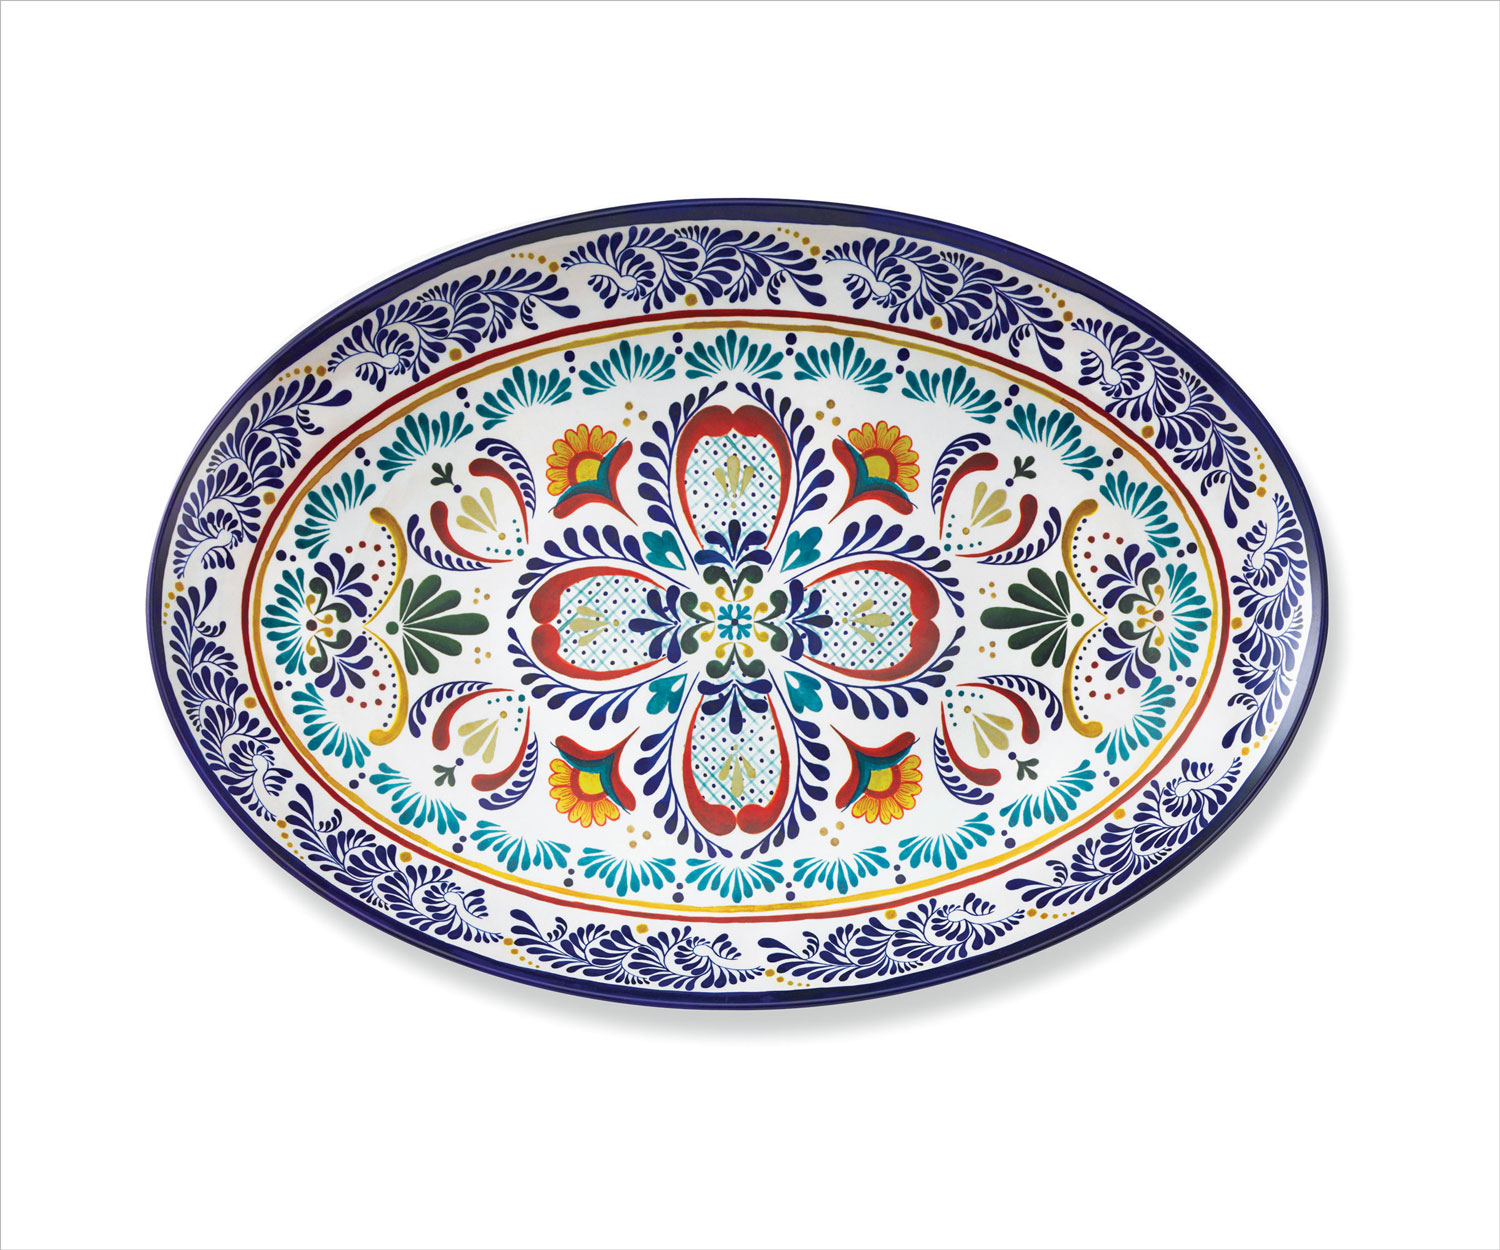 wedding registry product ideas veracruz melamine outdoor platter williams sonoma